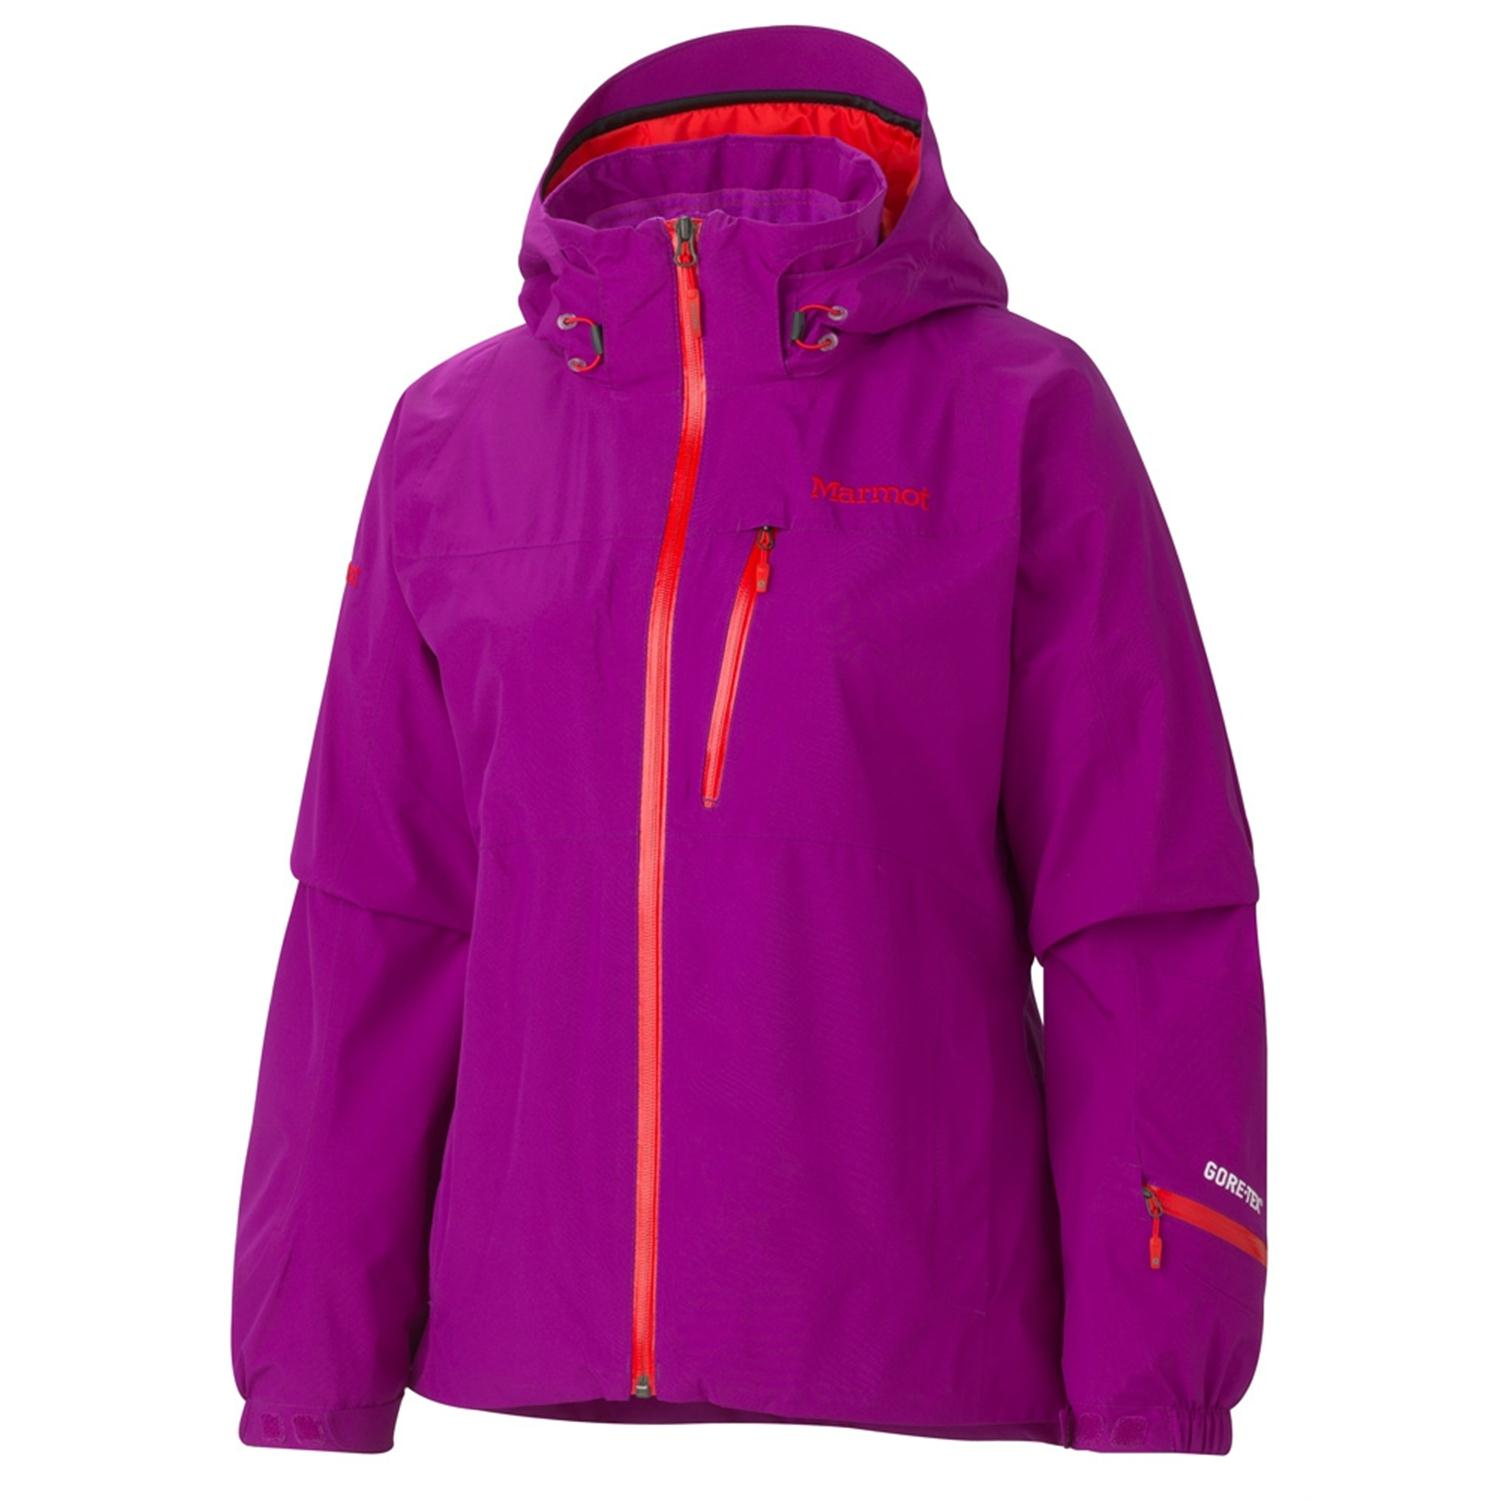 gore-tex ski guide jacket with a radio pocket